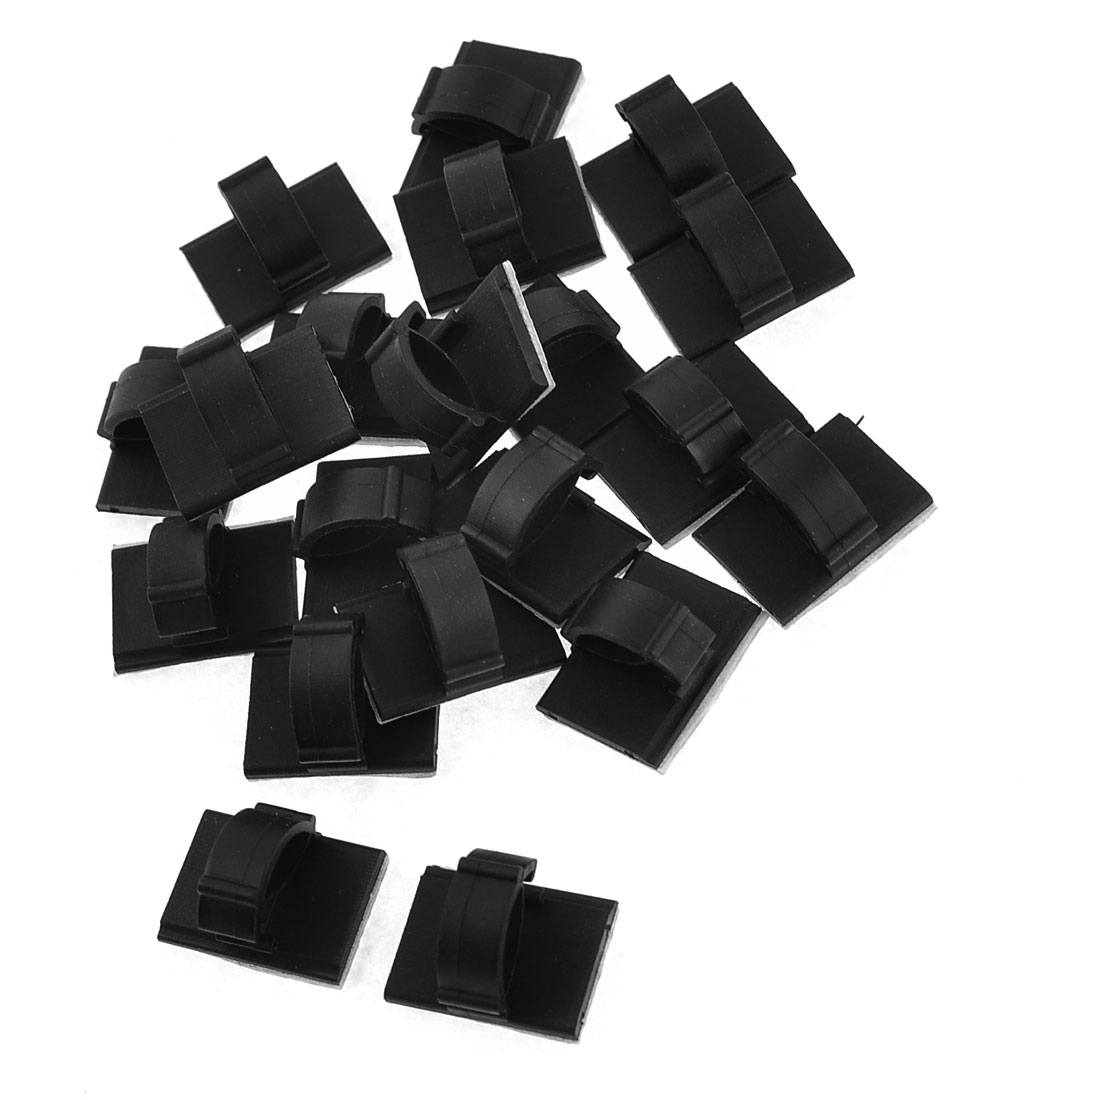 "Black Self-adhesive Mount Base for 0.4"" Width Cable Ties 20pcs"